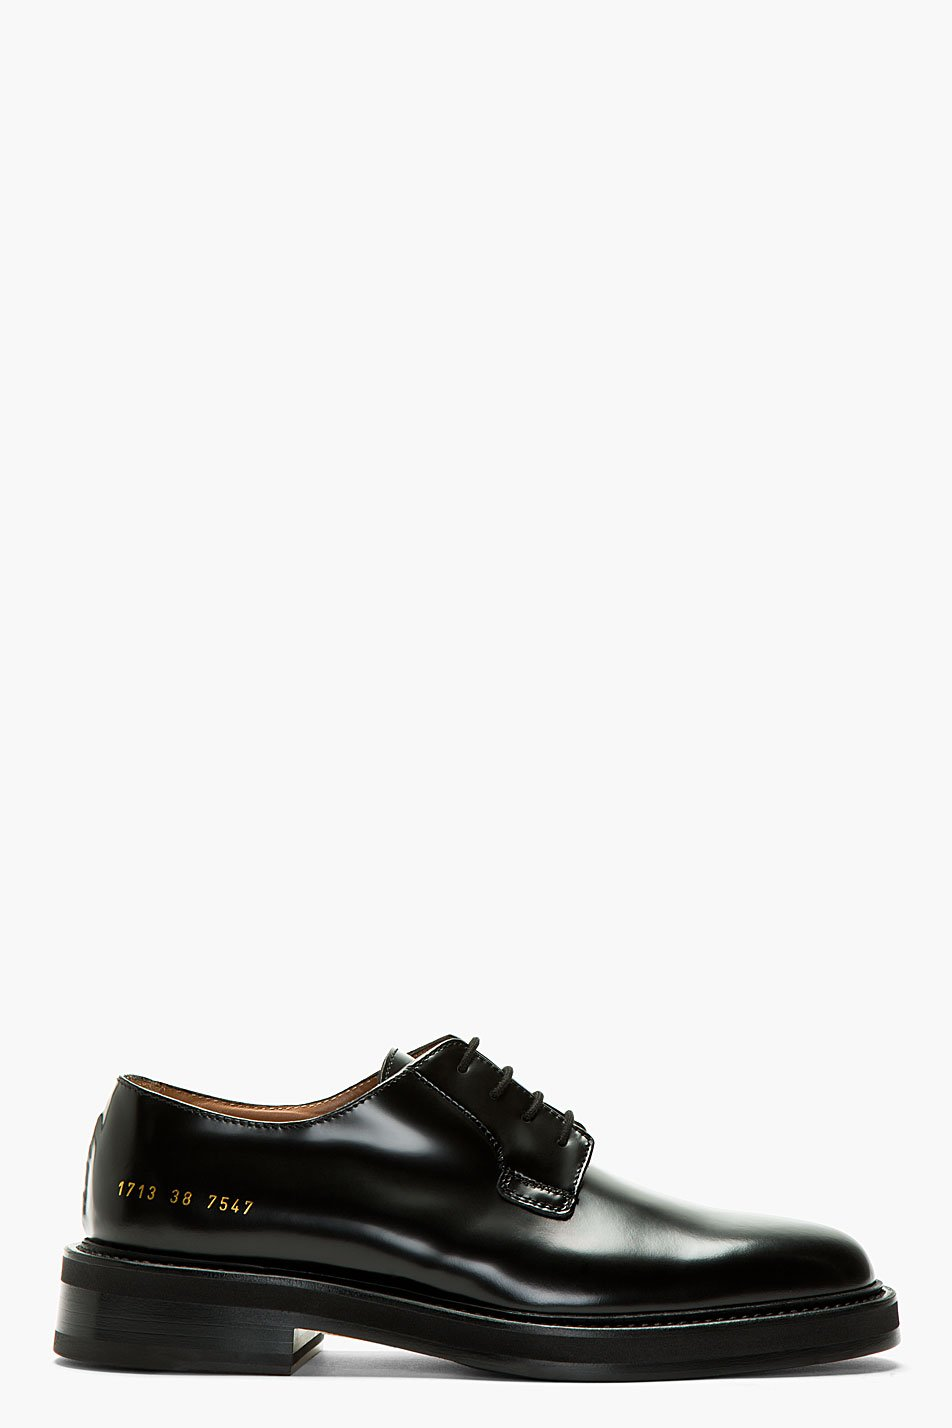 Common projects black leather cadet derbys